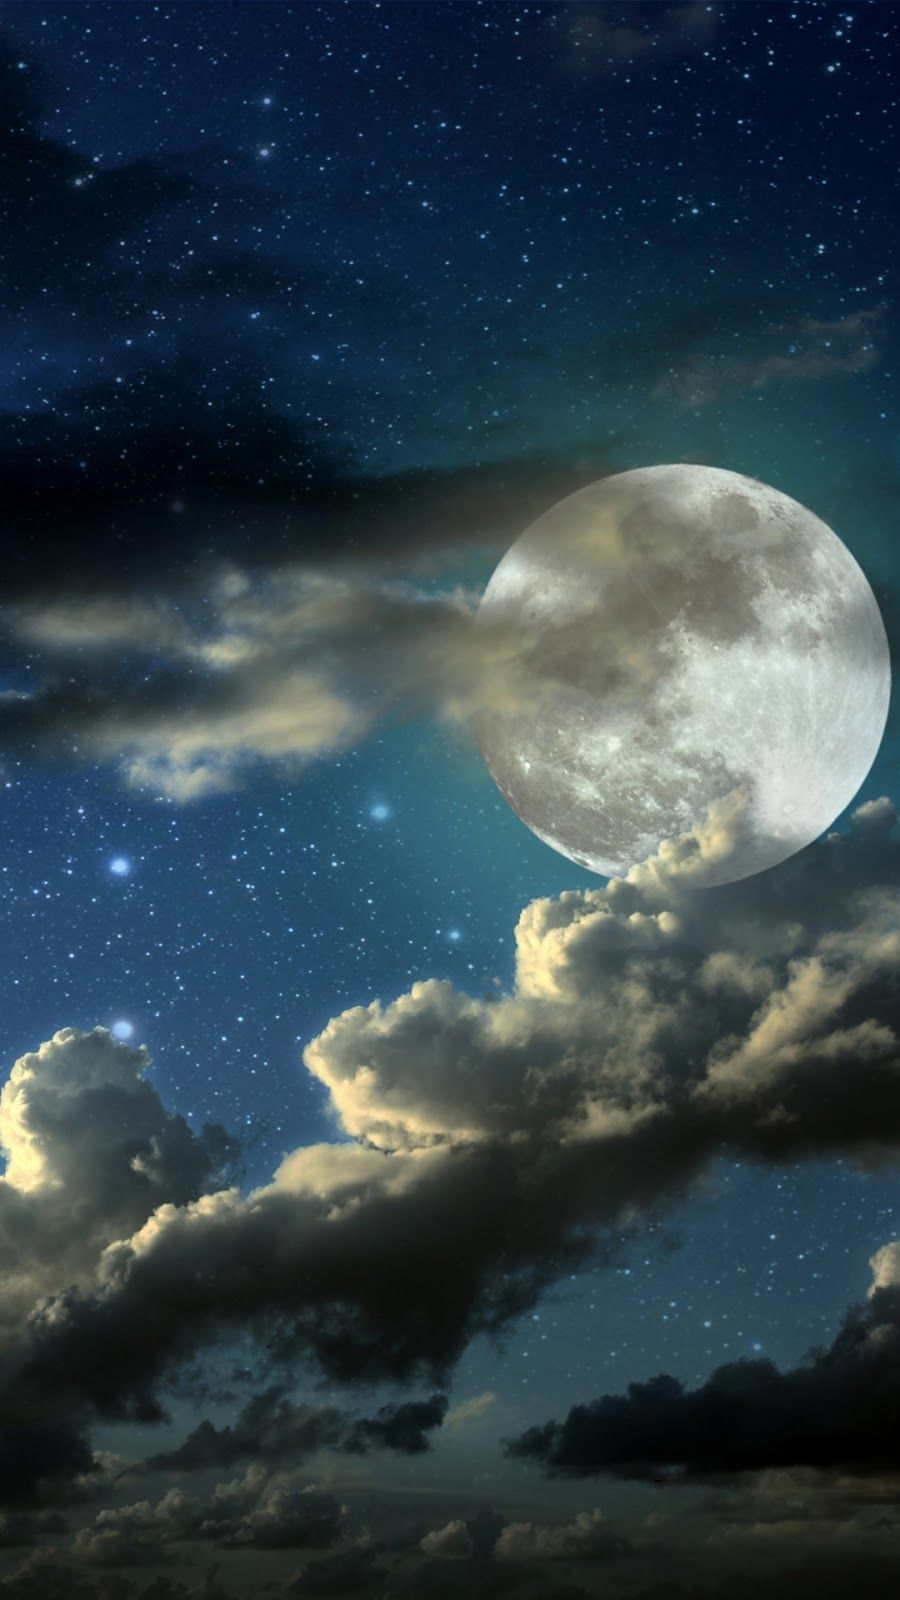 Night Sky Wallpaper Iphone Android Background Followme Beautiful Moon Stars And Moon Night Skies